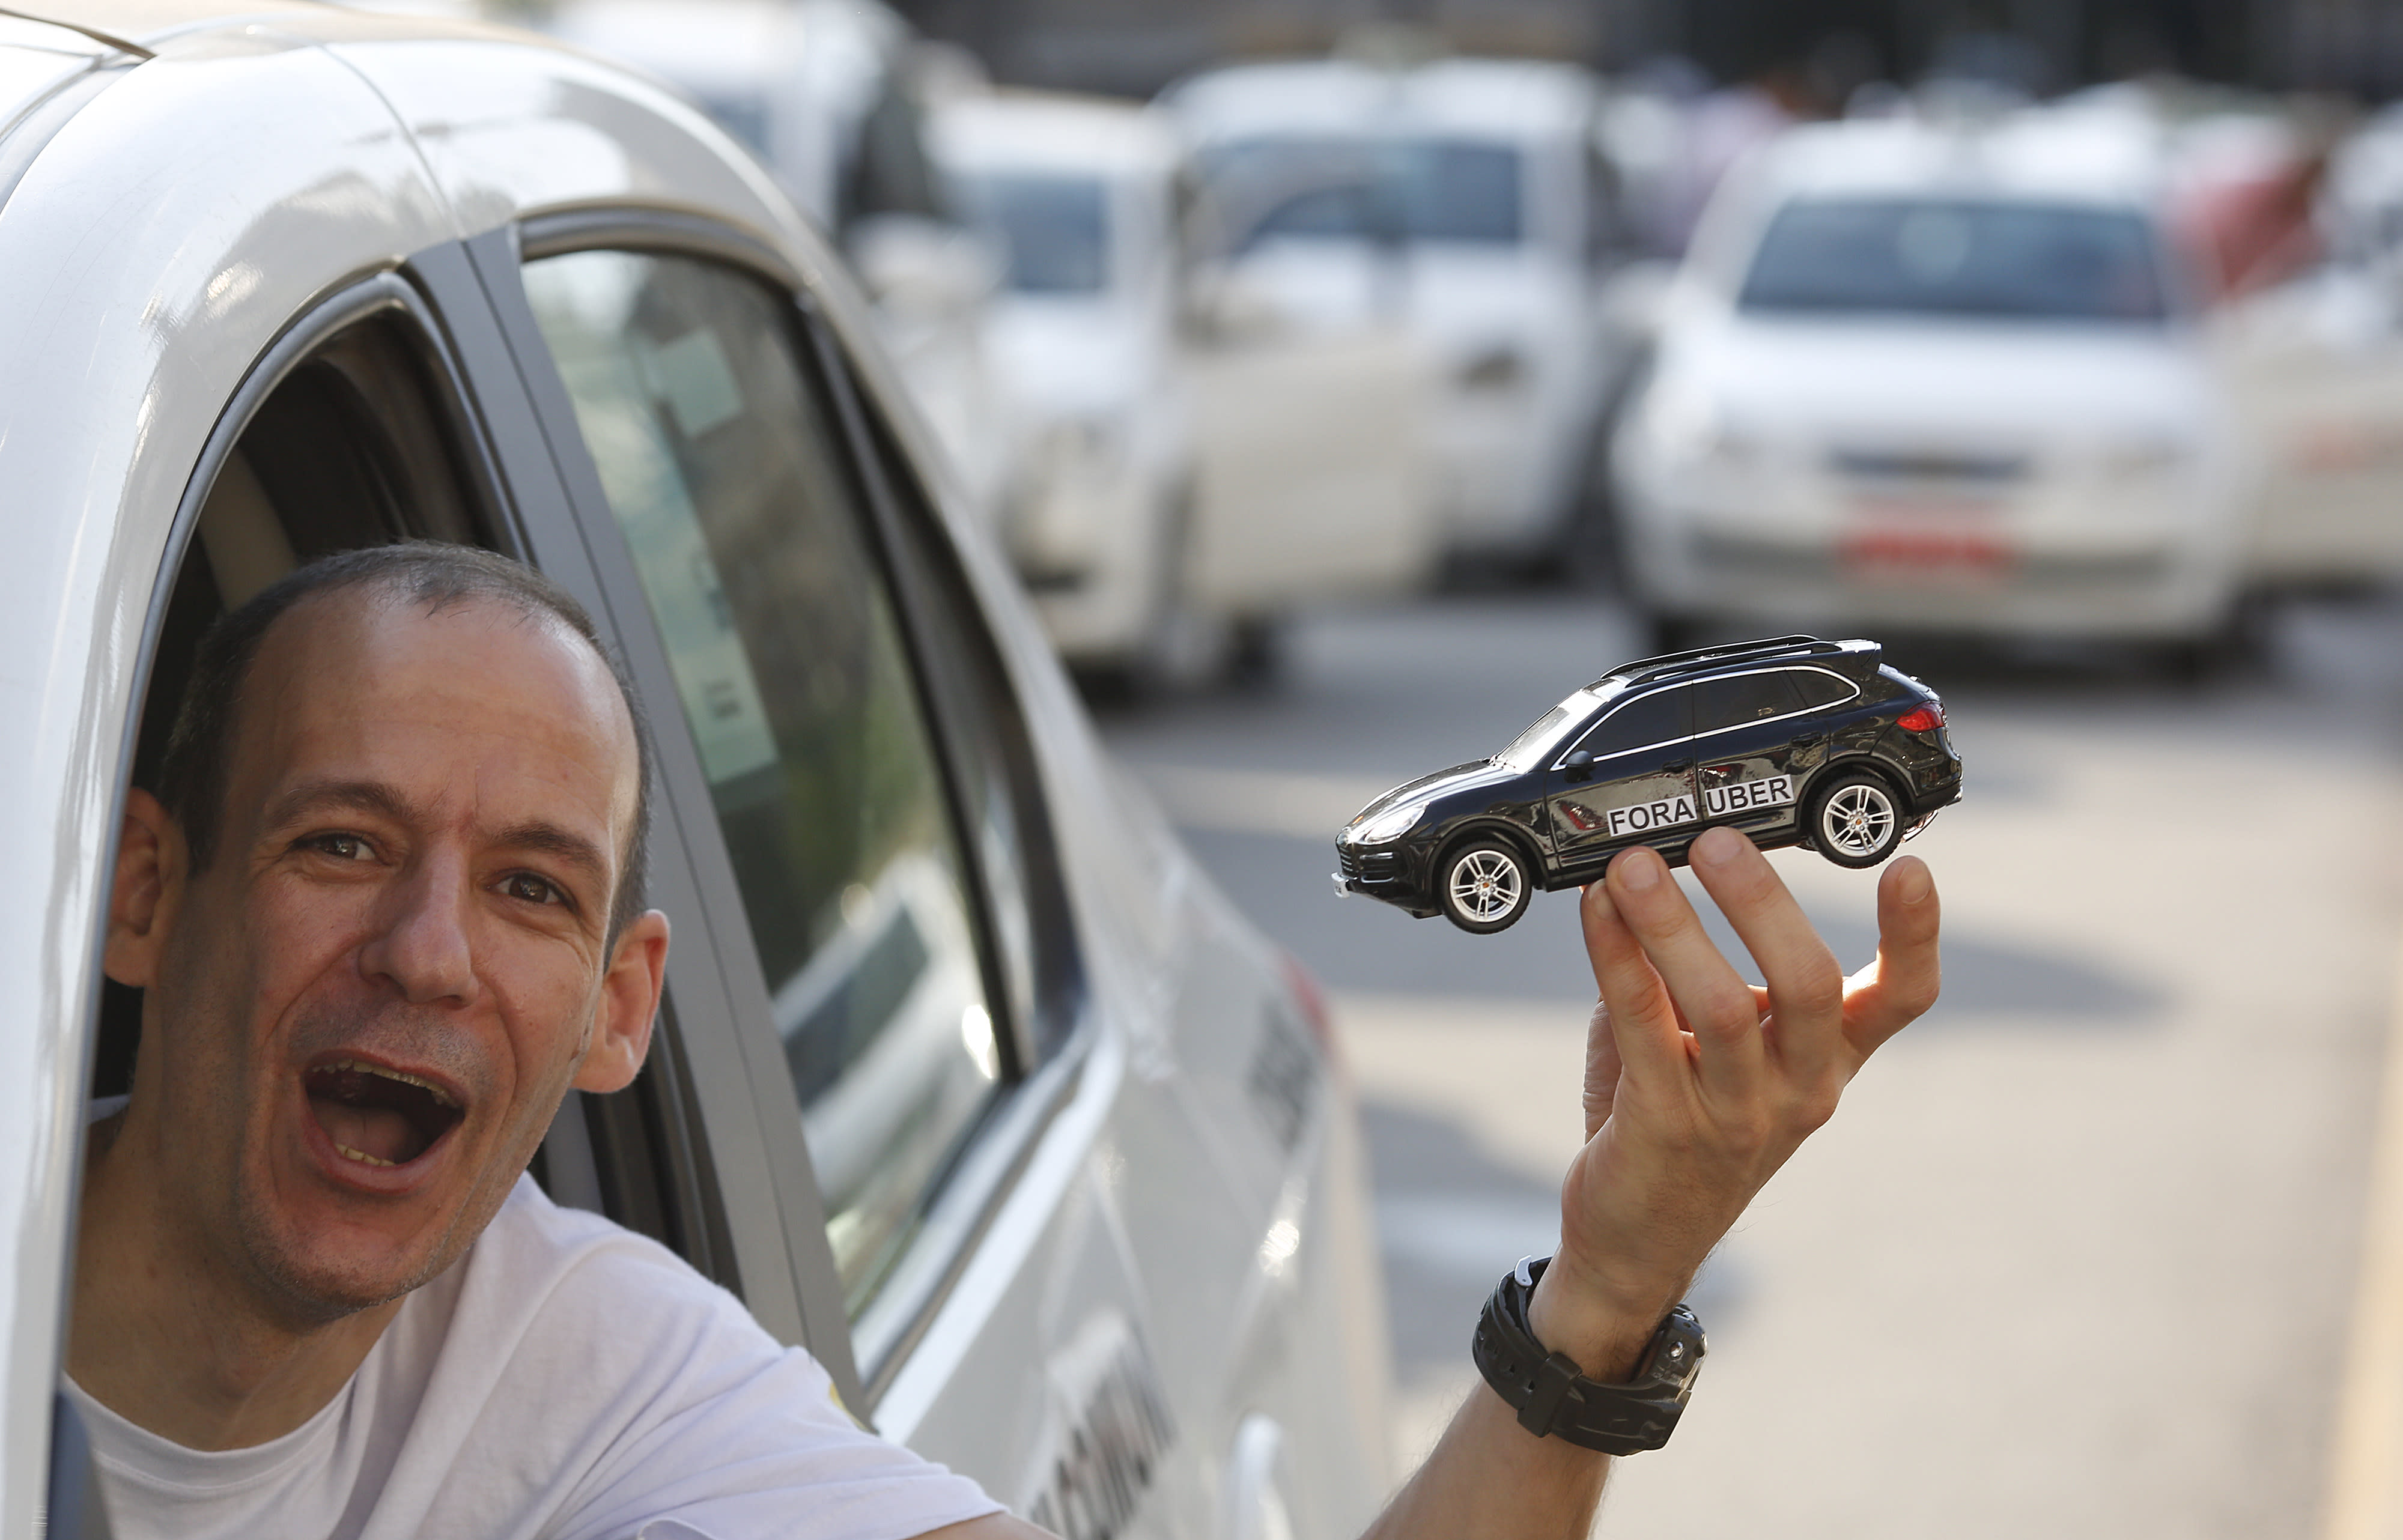 Judge issues restraining order that allows Uber in Rio